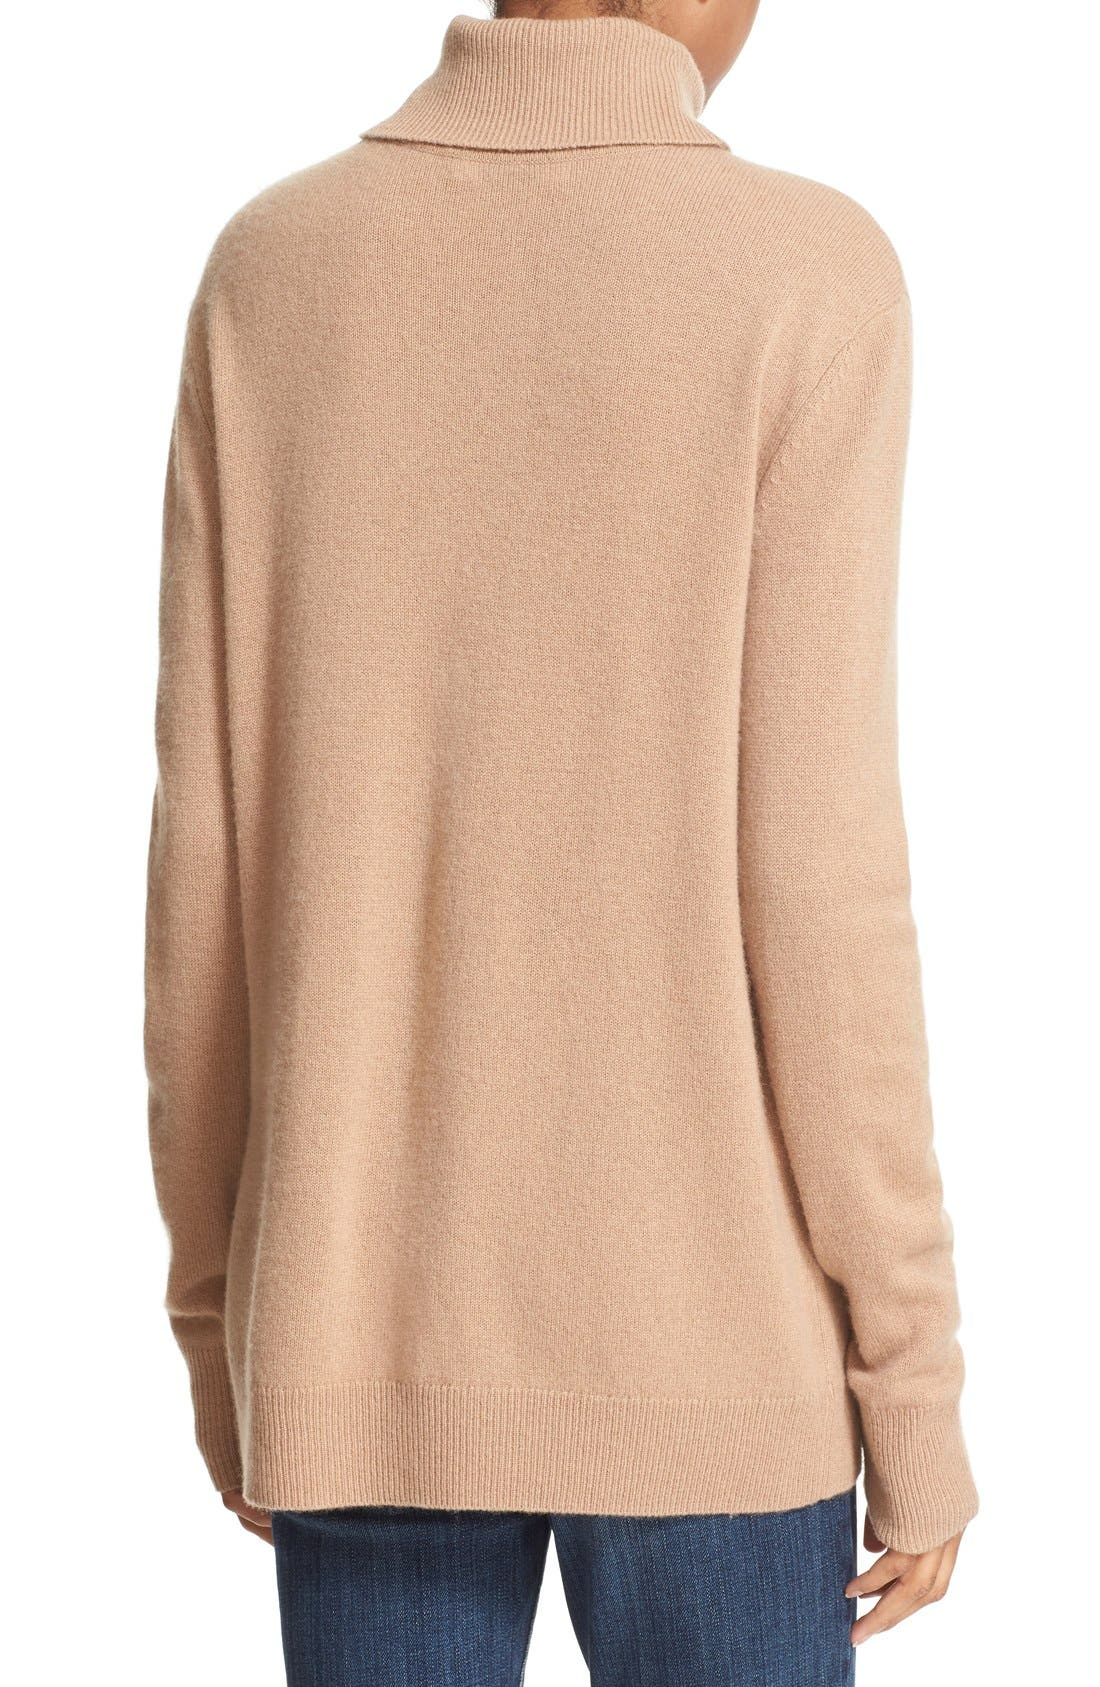 Alternate Image 2  - Equipment 'Oscar' Cashmere Turtleneck